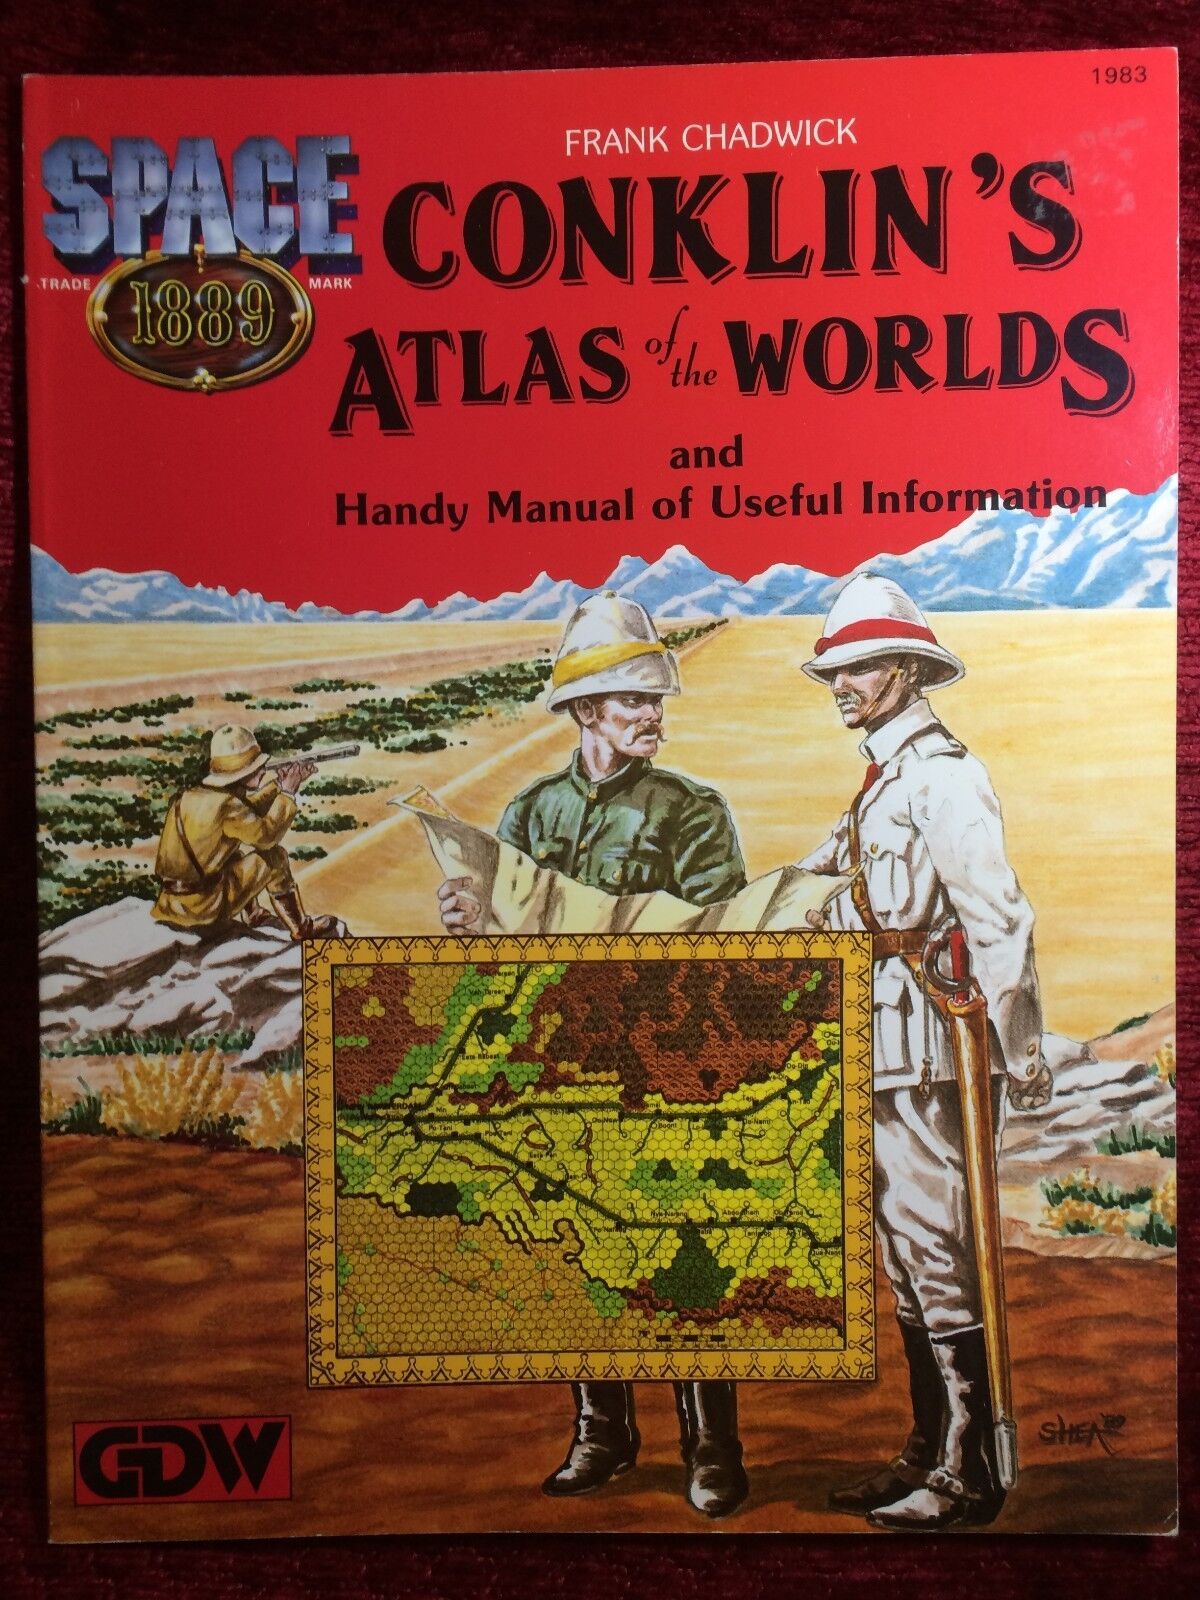 Conklin's Atlas of the Worlds - Space: 1889 - GDW Games